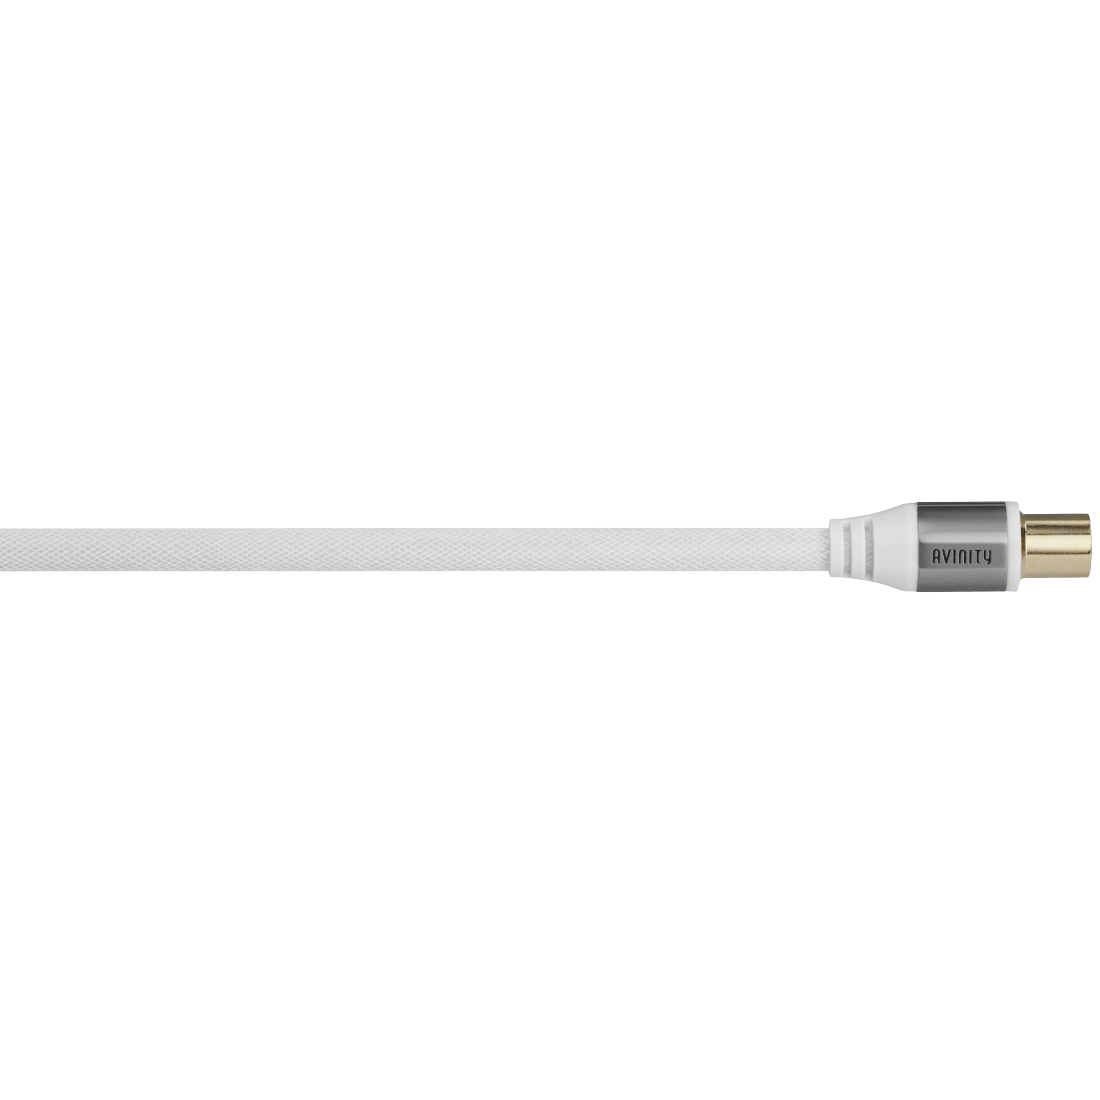 abx High-Res Image - Avinity, Antenna Cable, Coax Plug - Coax Socket, Fabric, Gold-Pltd., 110 dB, 7.0 m